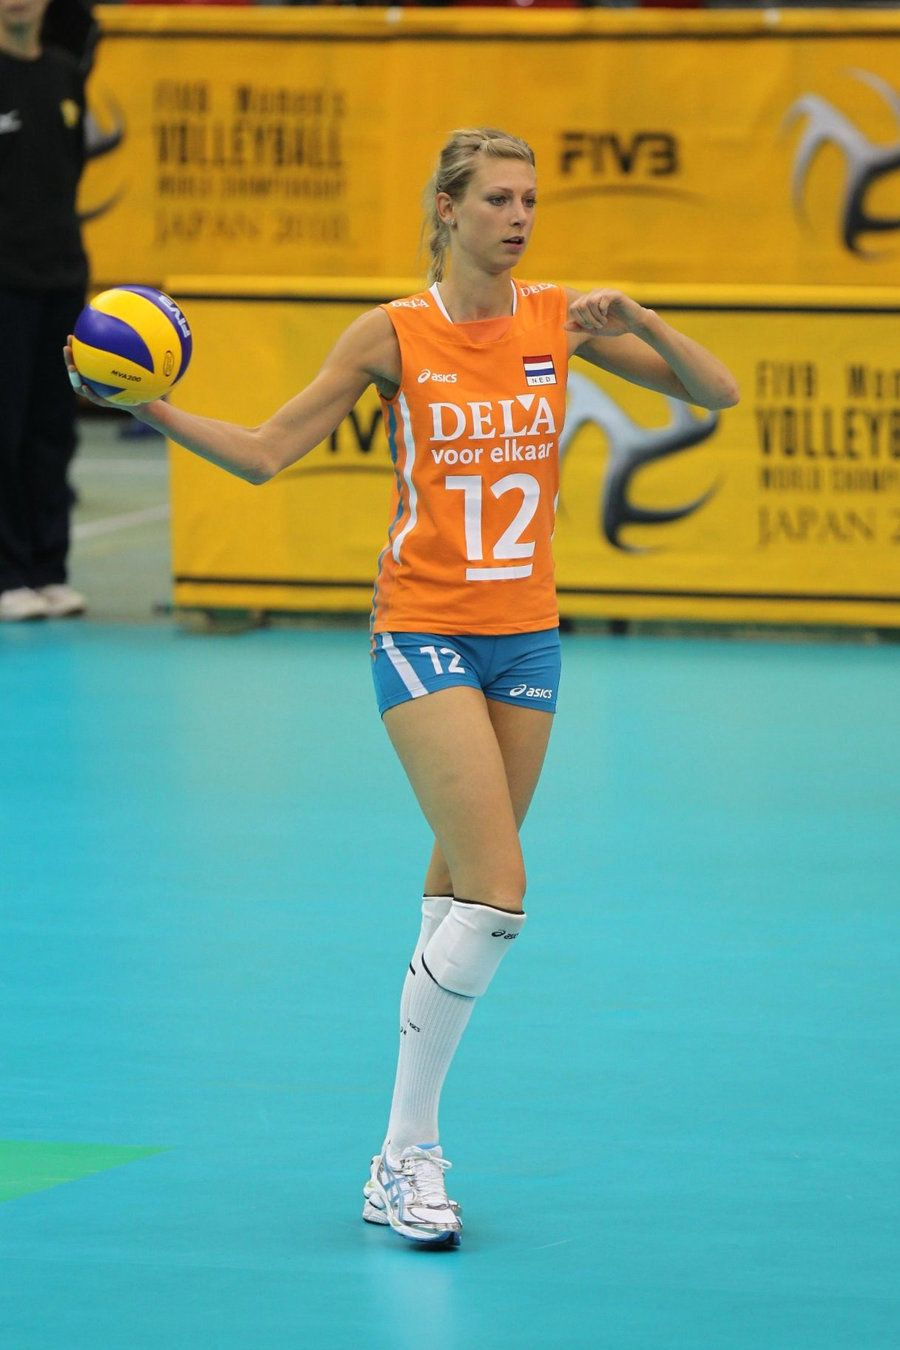 Manon Flier Netherlands 2010 World Championship Volleyball Players Volleyball Female Athletes